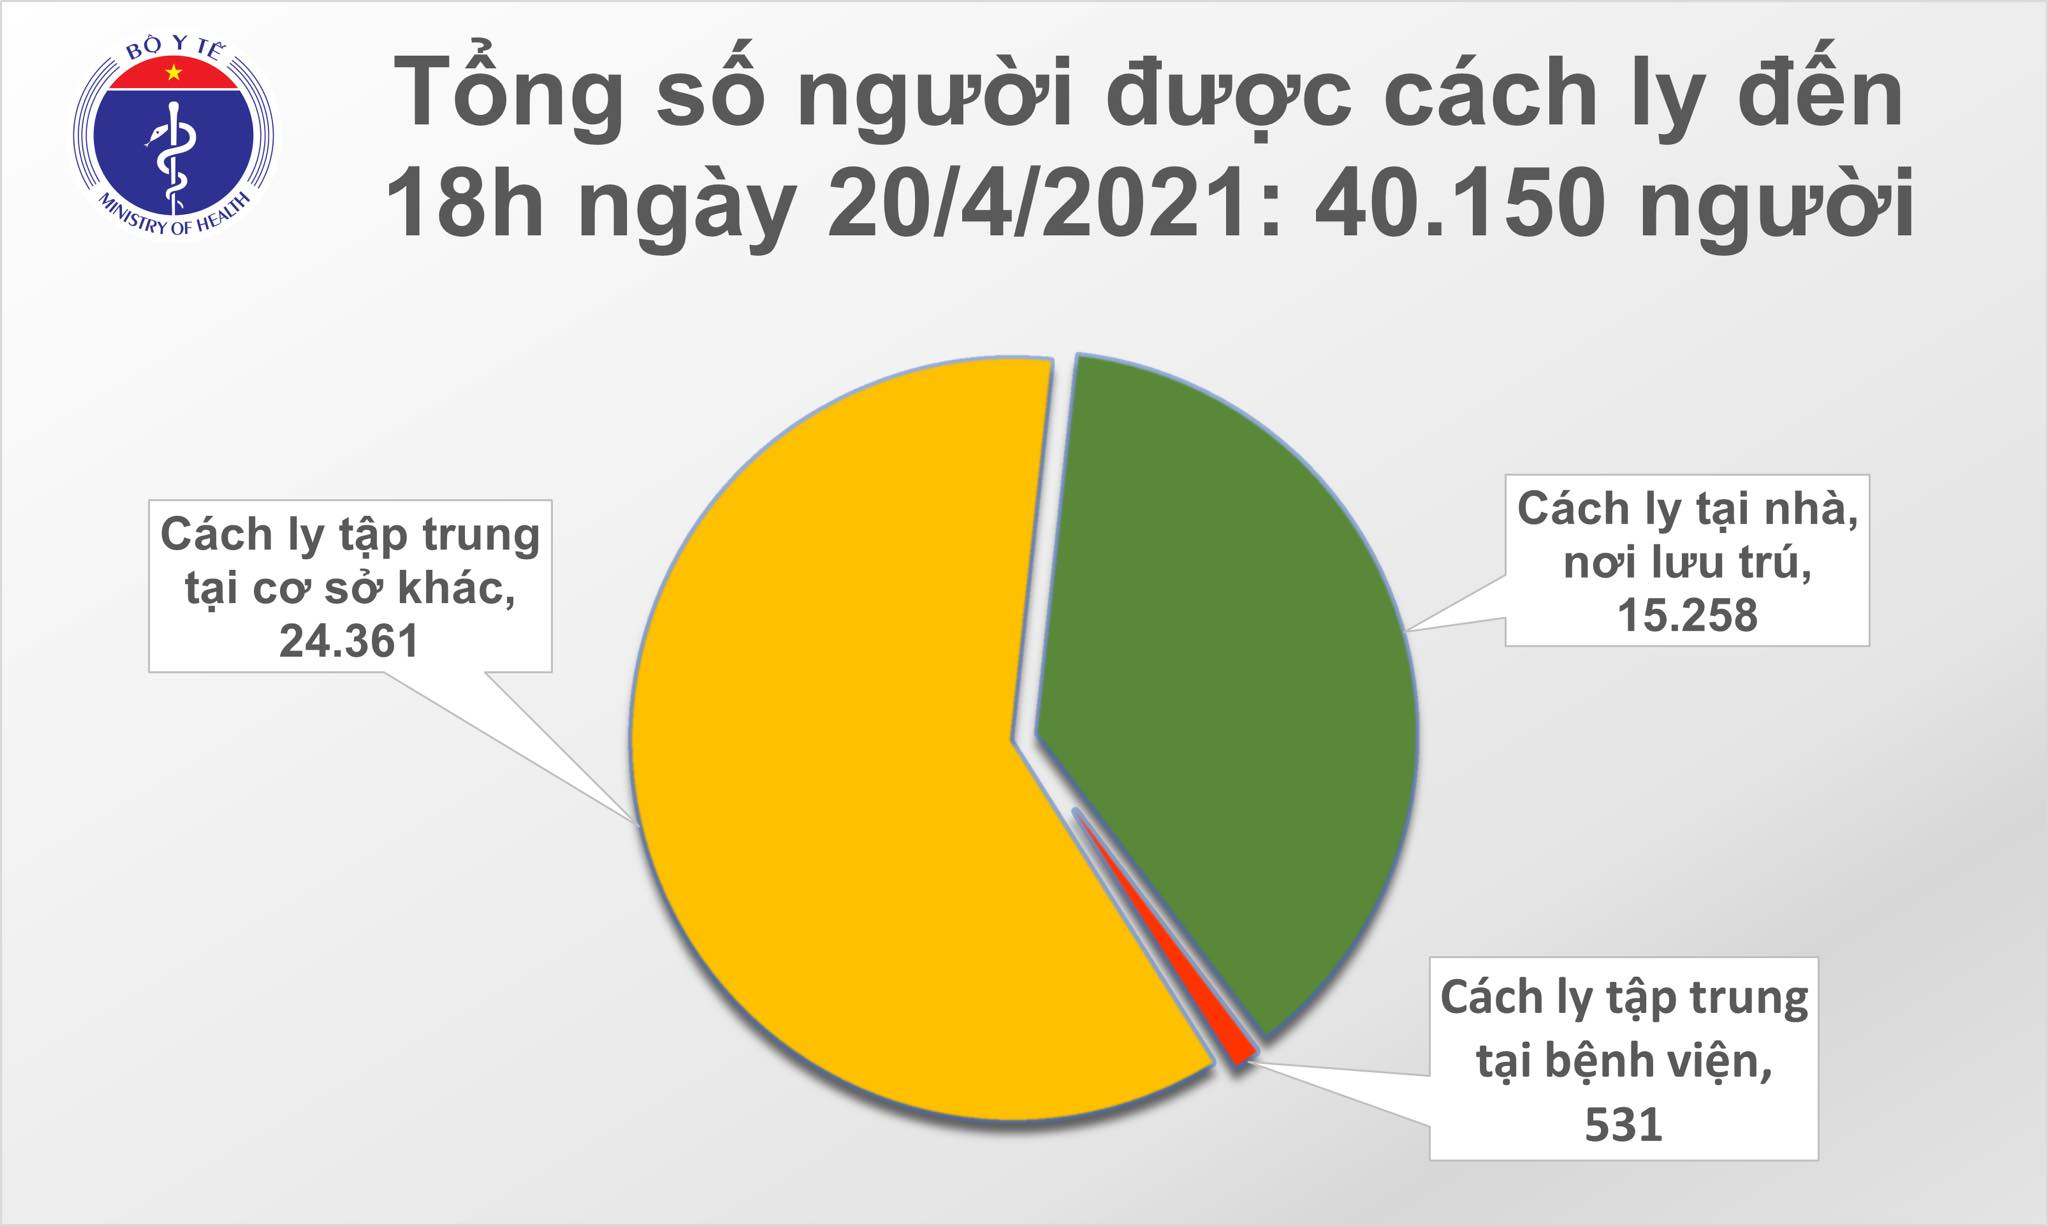 On the afternoon of April 20, 10 new cases of Covid-19 were added to 5 provinces and cities - Photo 2.